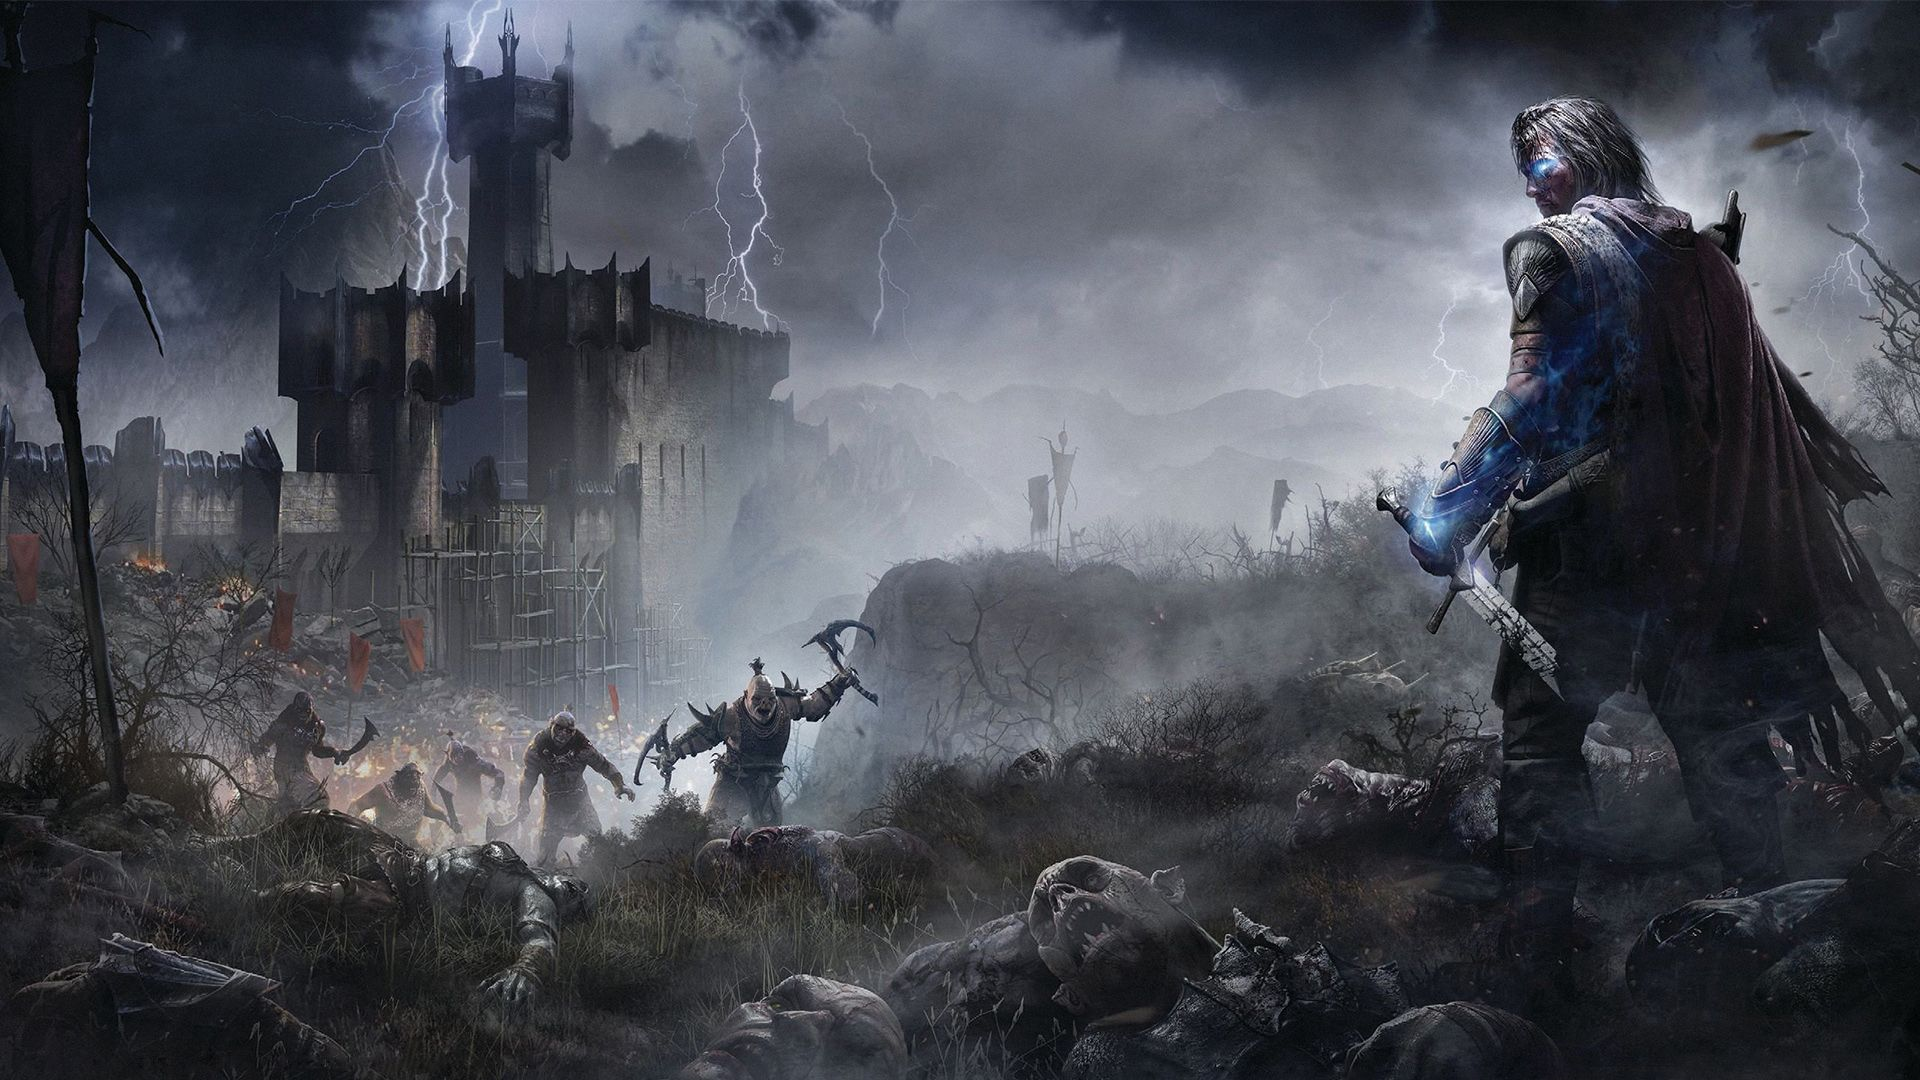 shadow of mordor talion wallpaper the hobbit lord of